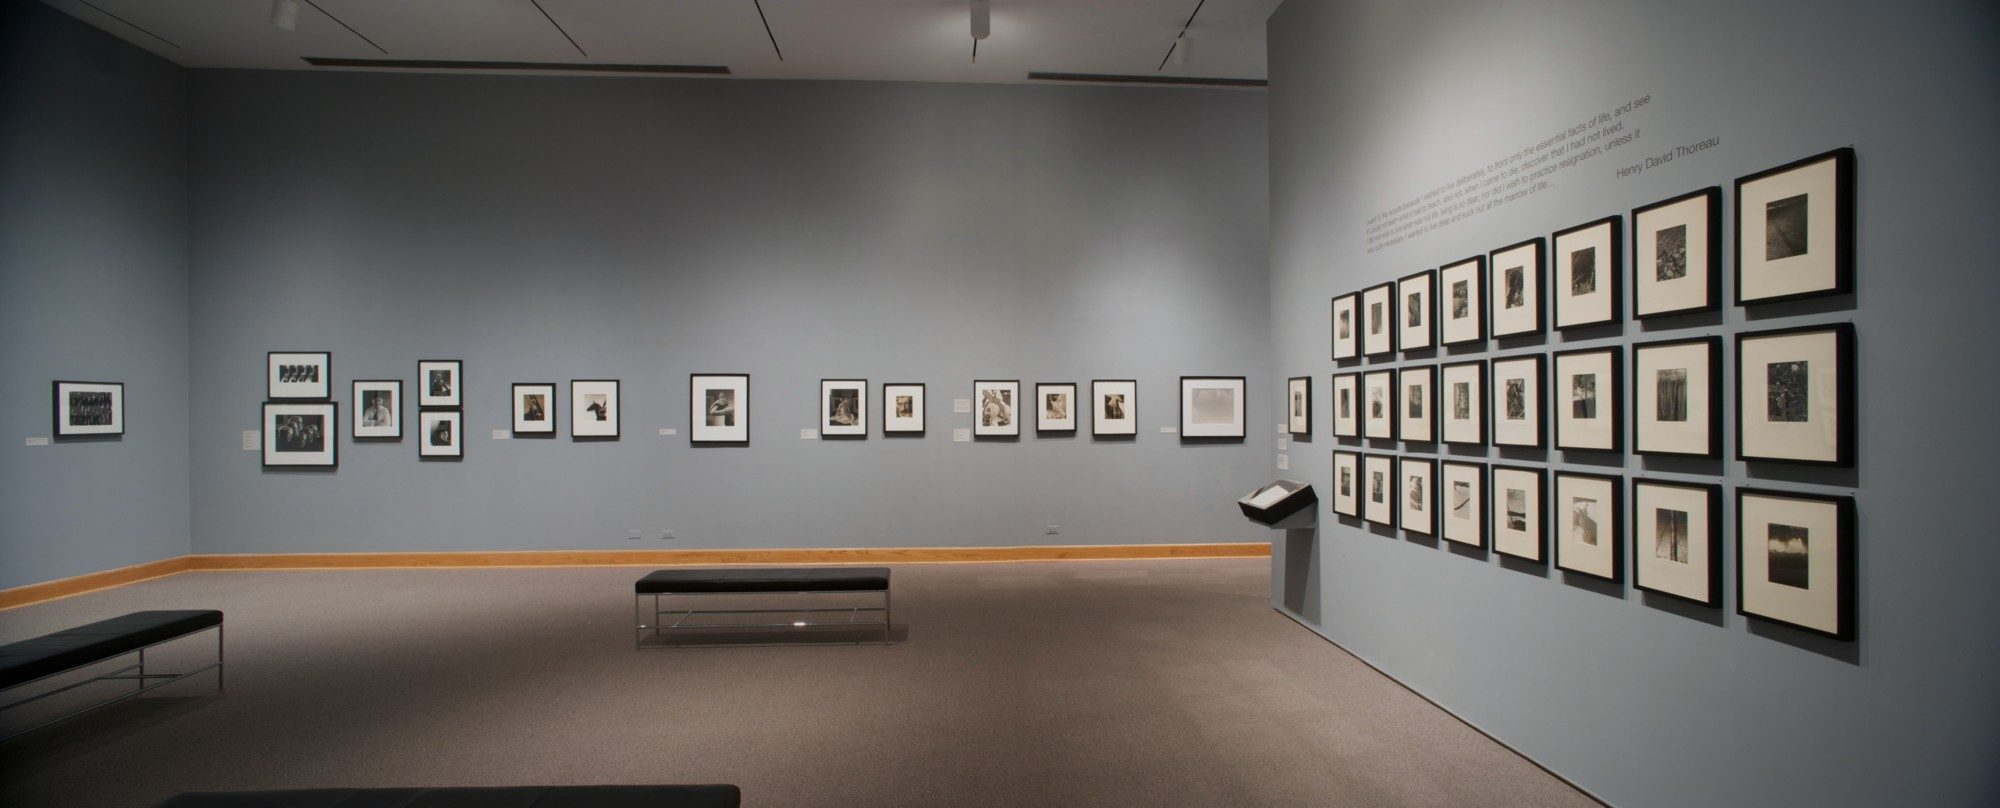 Edward Steichen: Episodes from a Life in Photography. Installation photo by Arthur Evans.